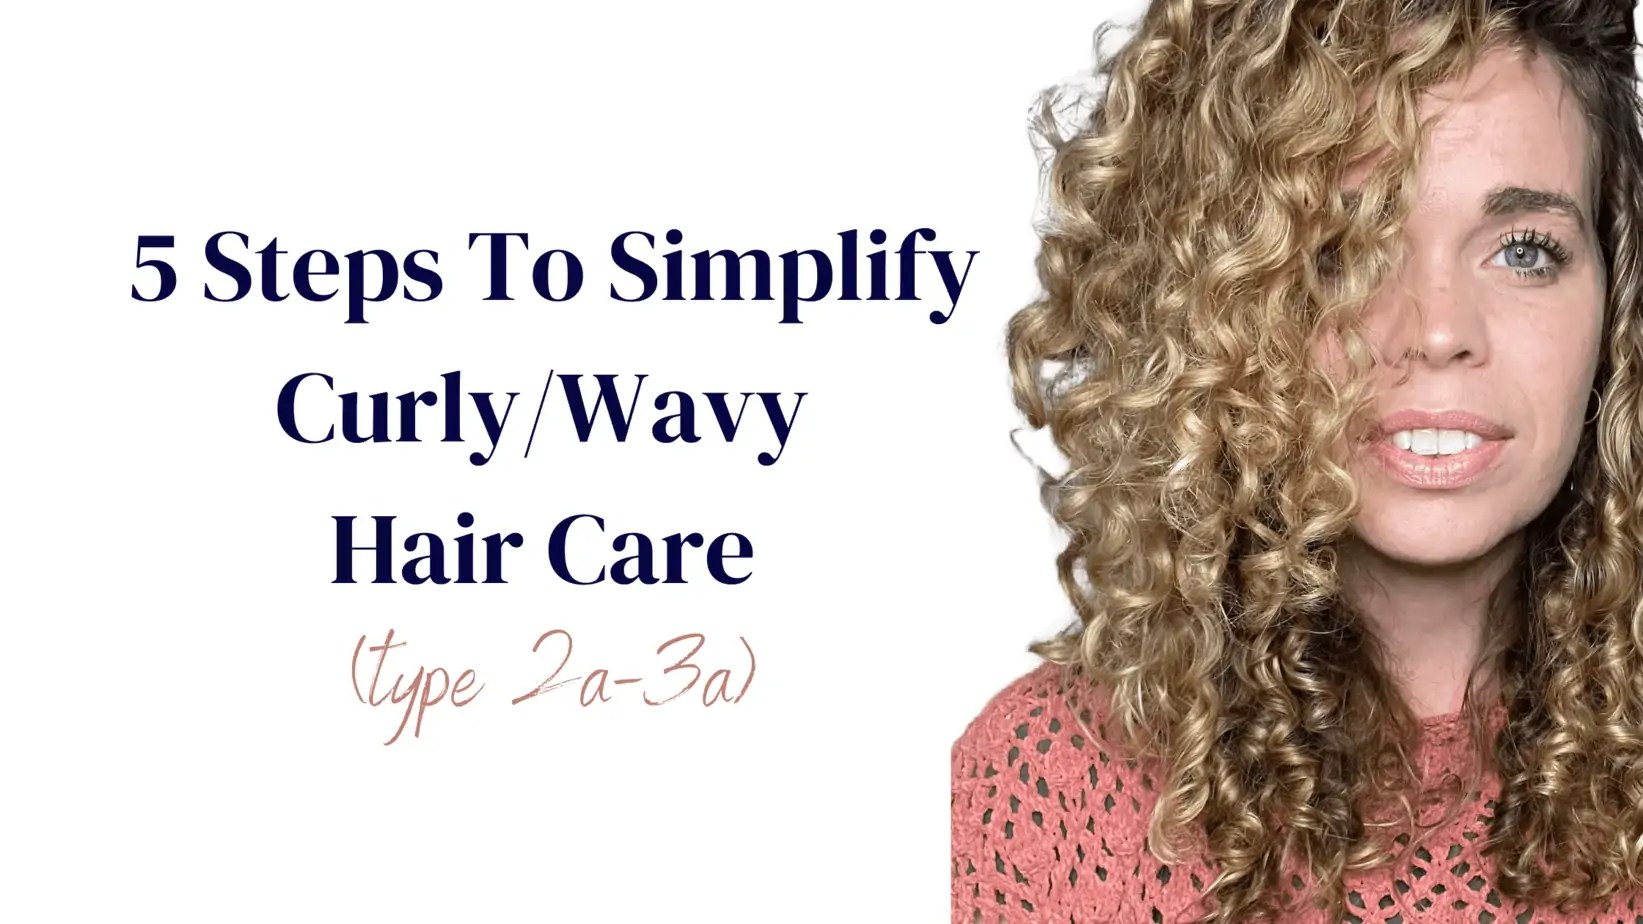 5 Steps To Simplify Curly/Wavy Hair Care